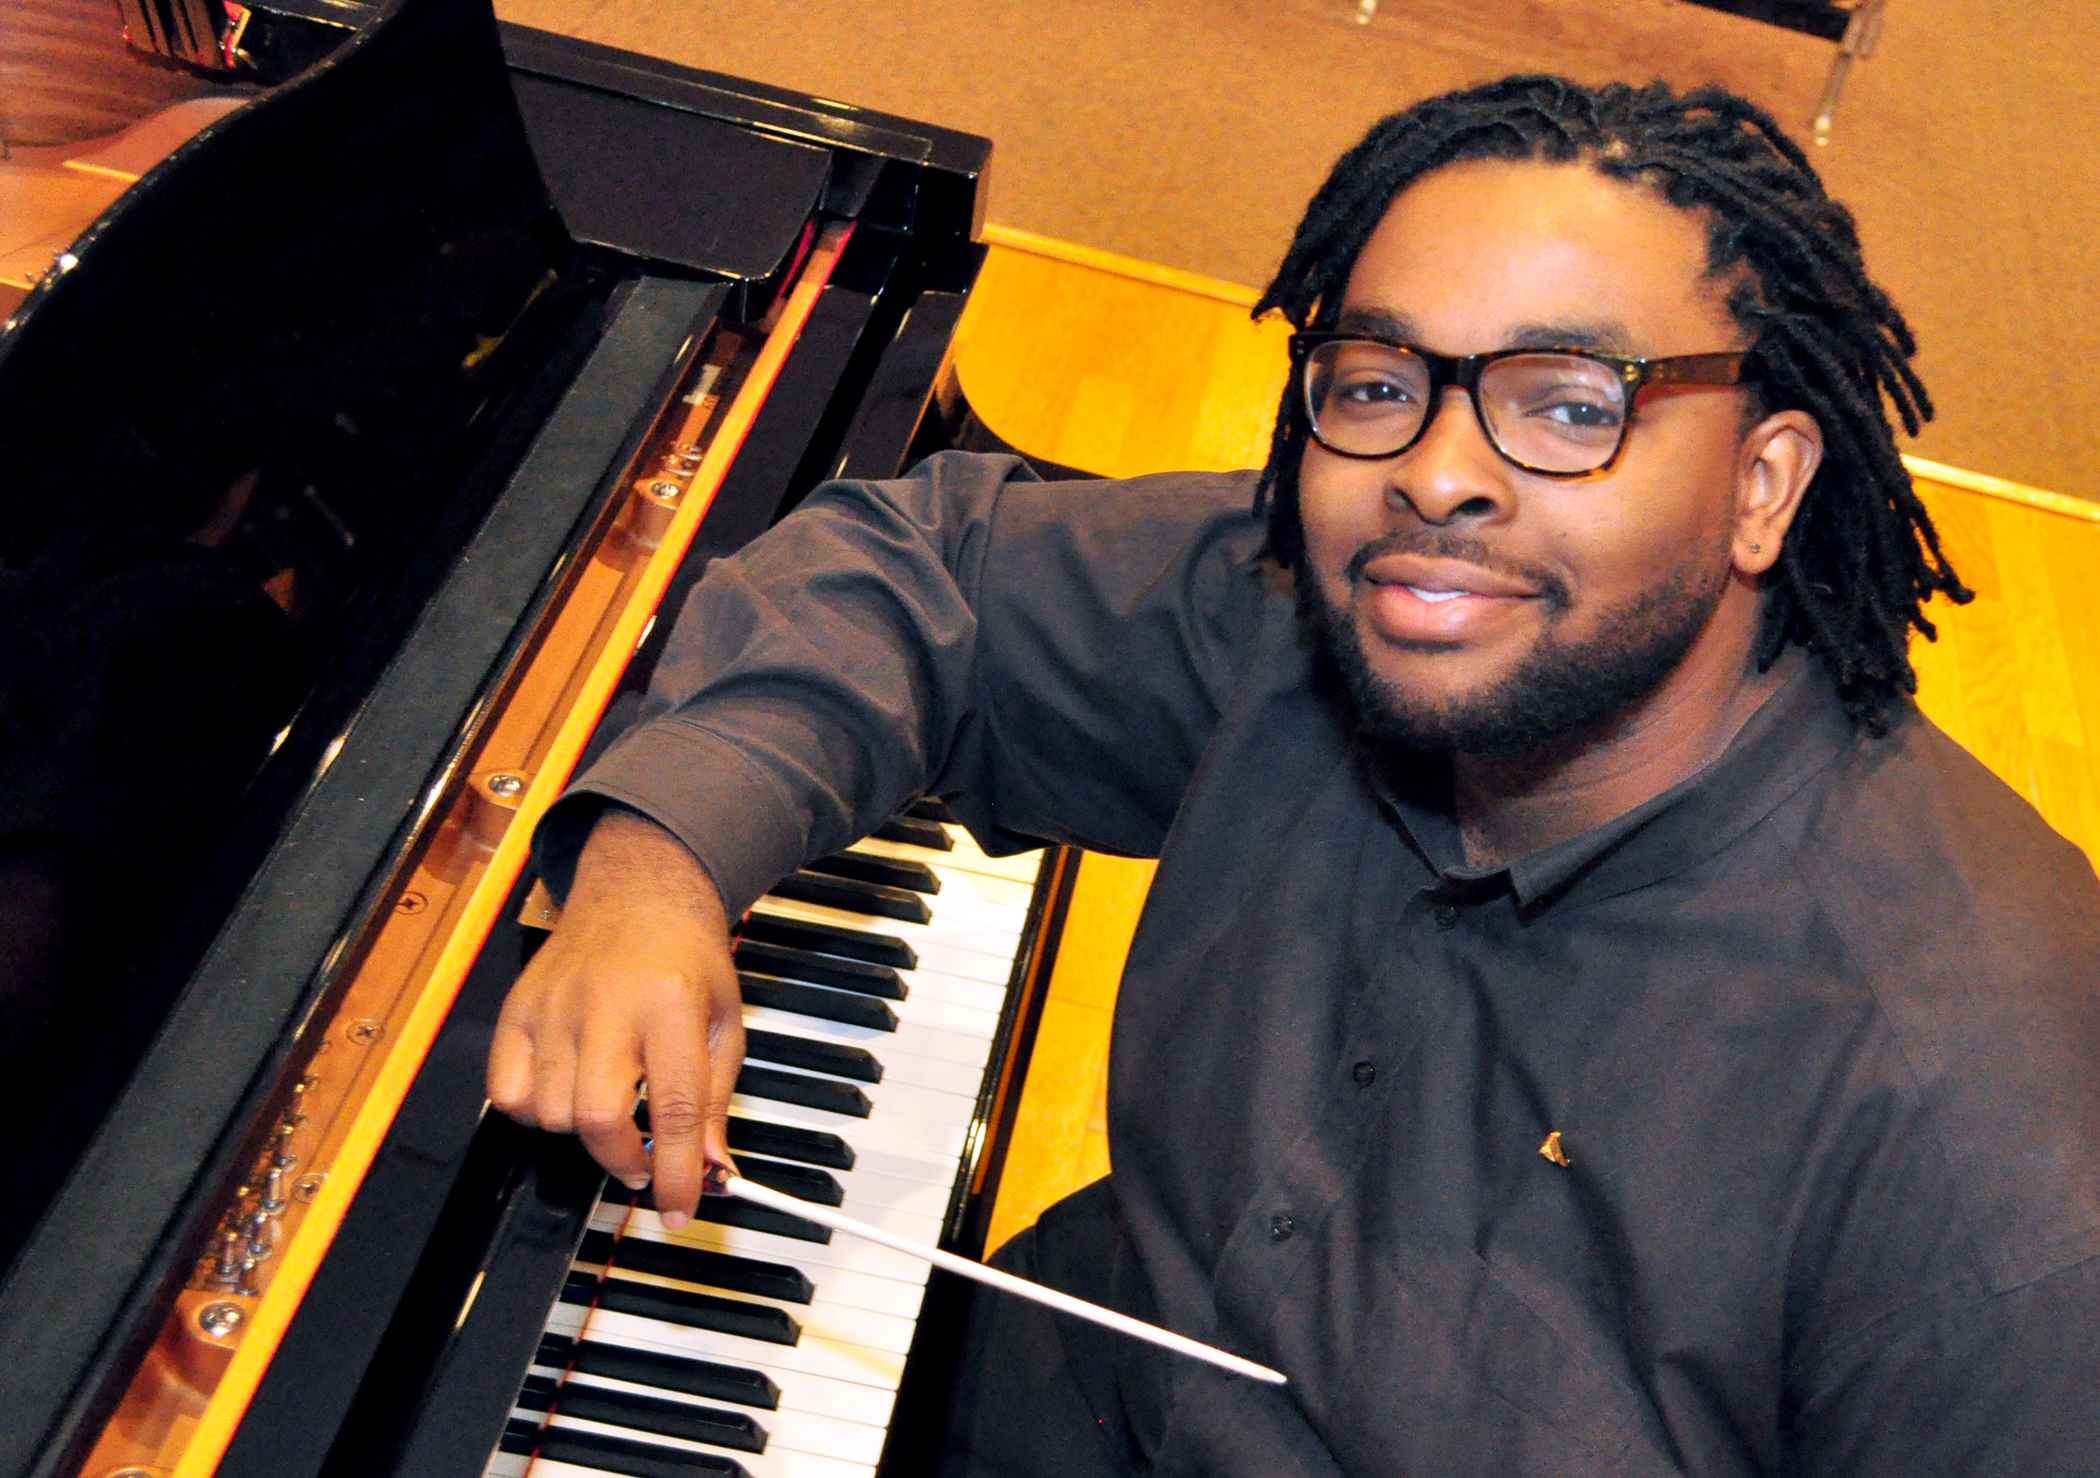 SUBR music student Jerrell R. Gray